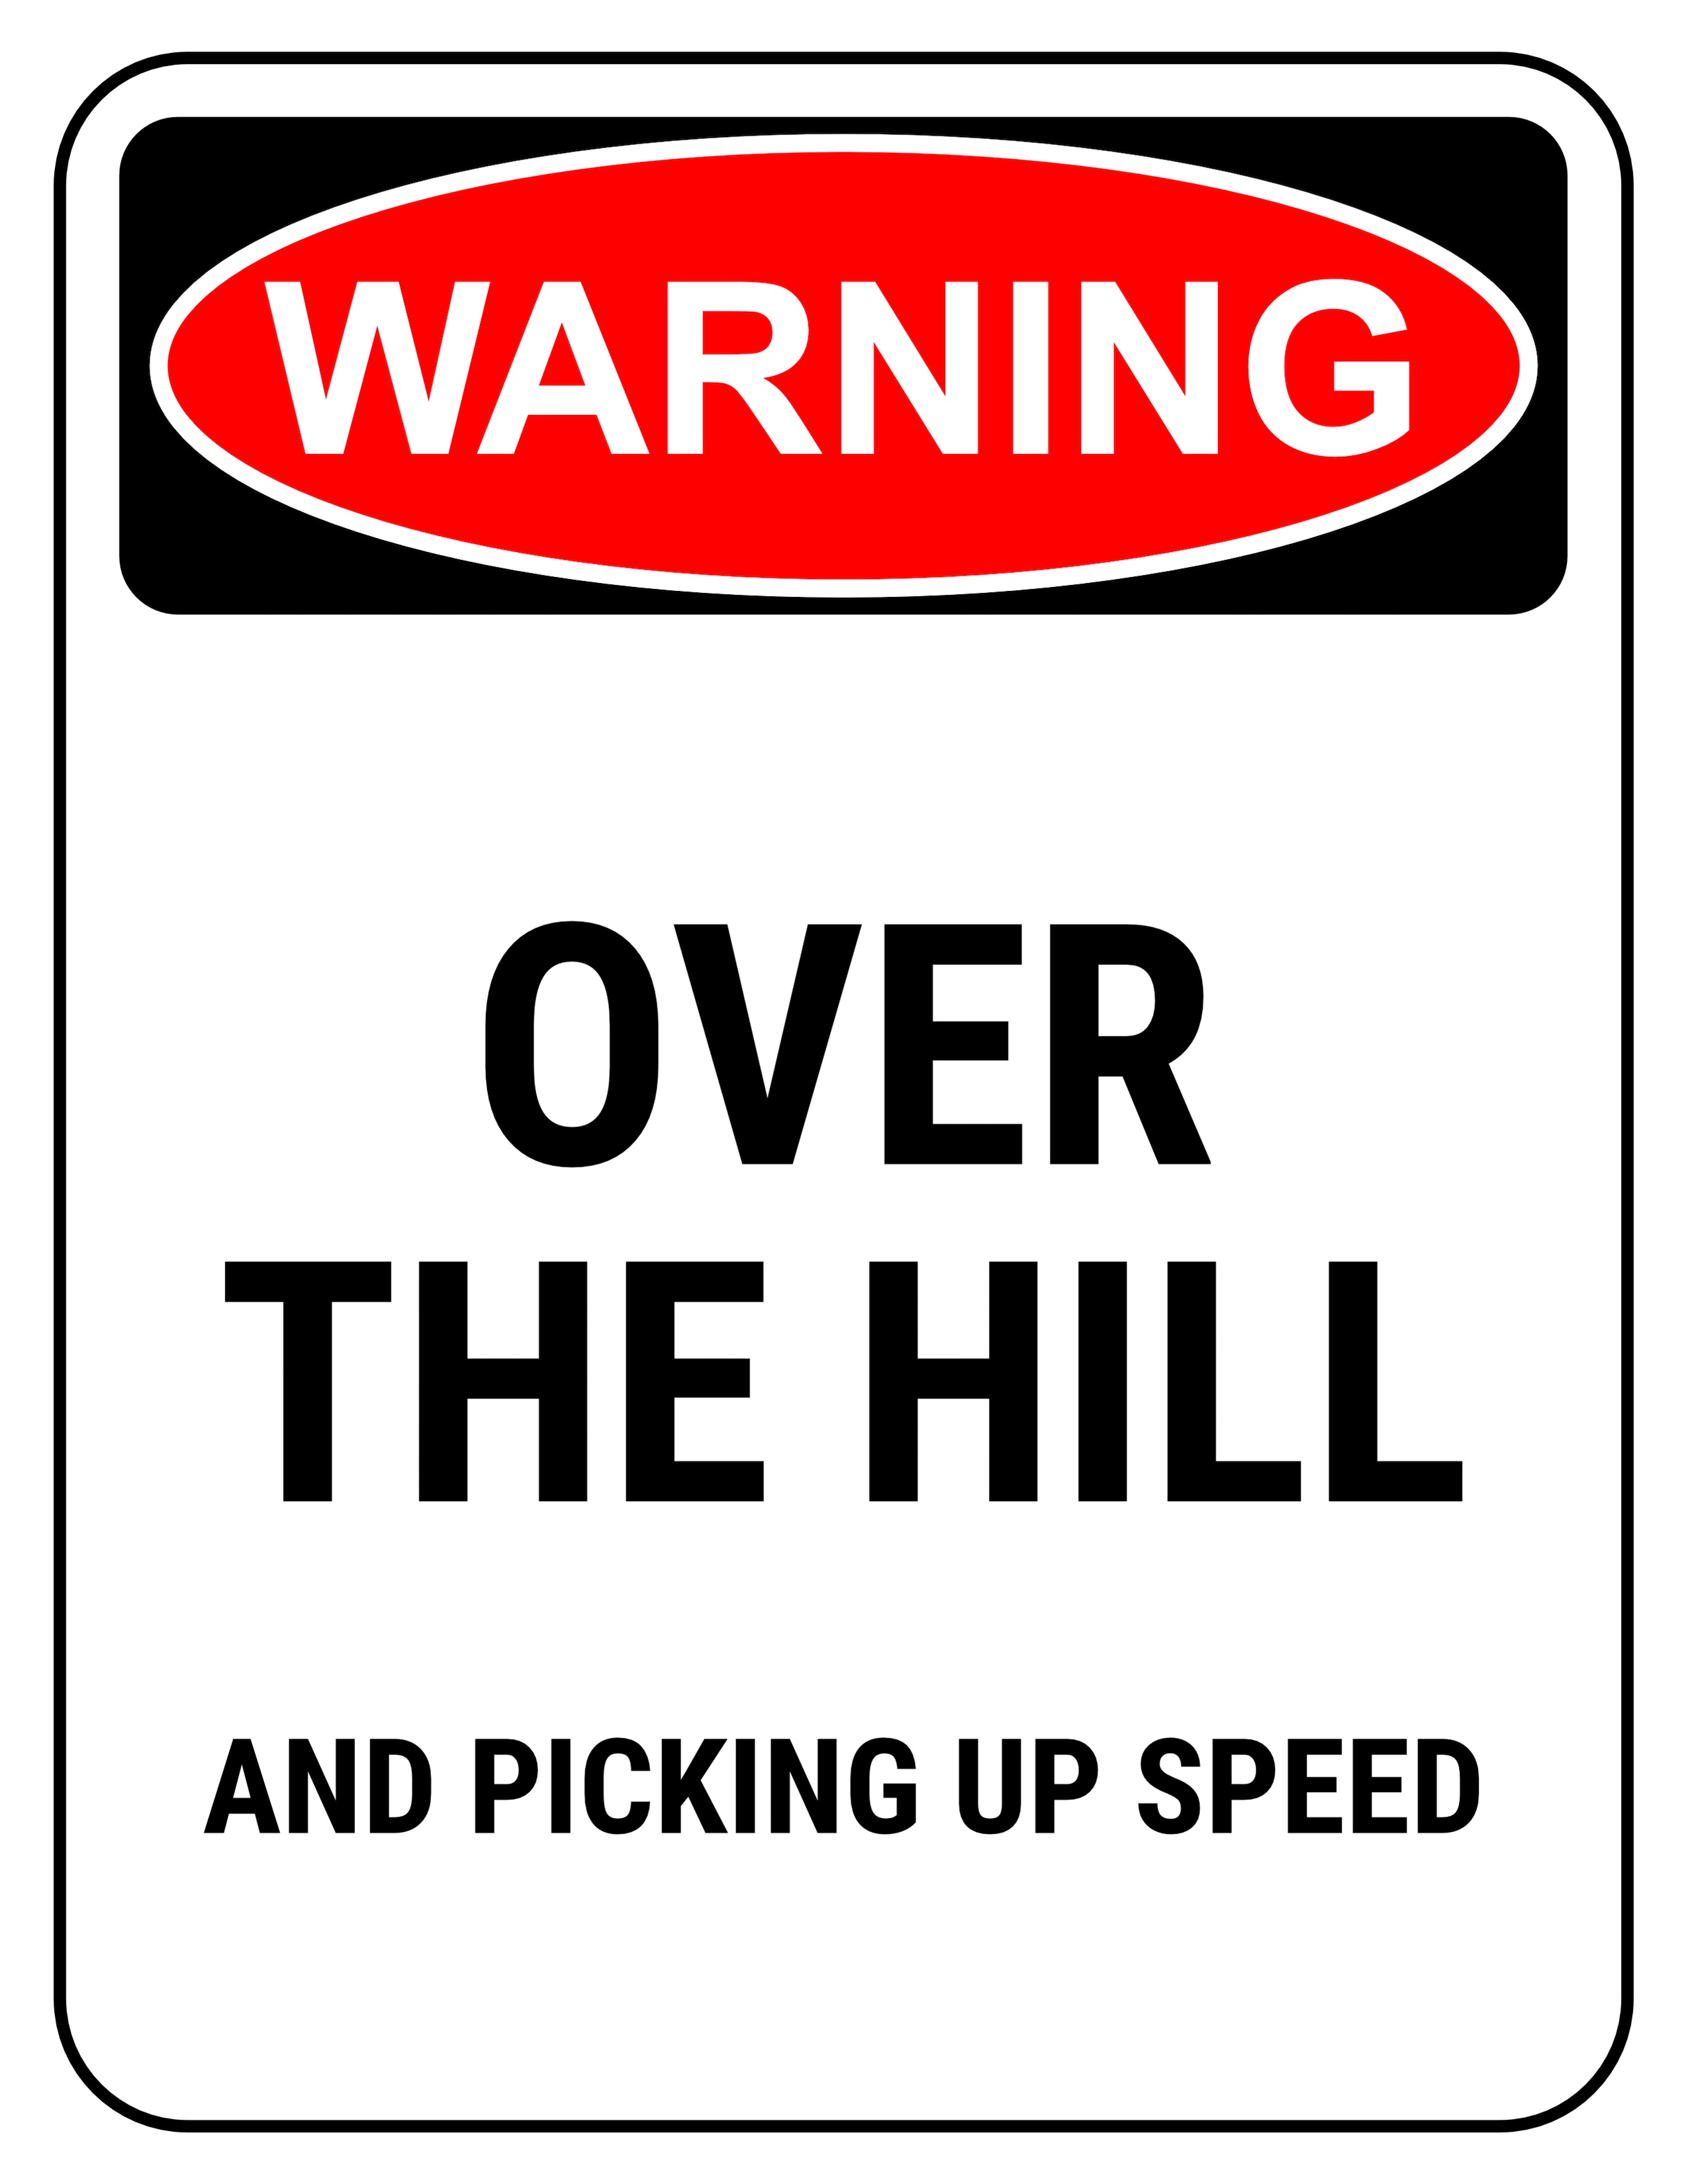 printable over the hill birthday signs ; funny-safety-sign-warning-over-the-hill-2550x3300